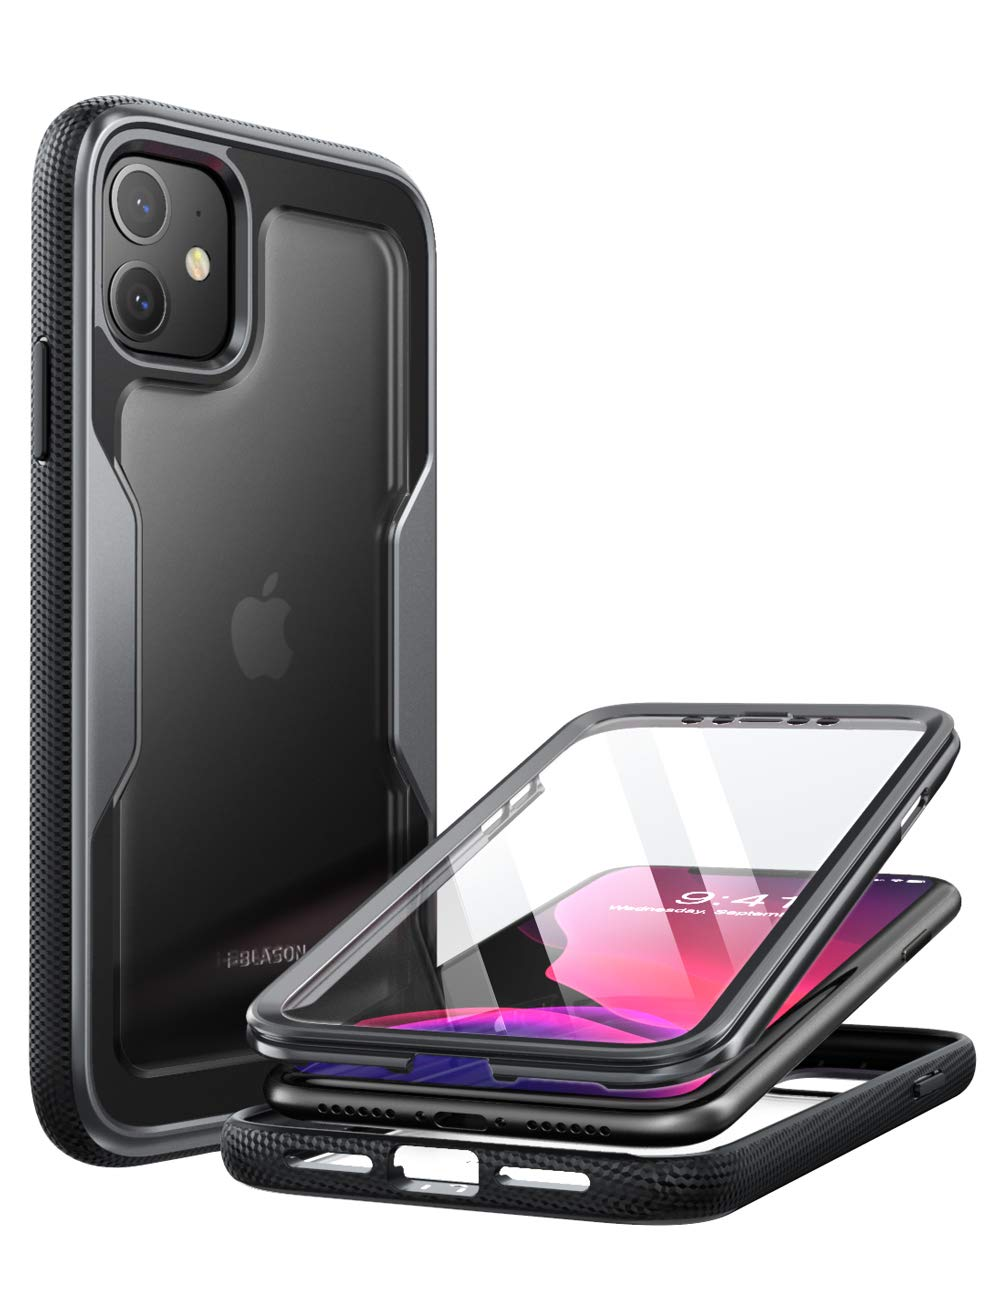 i-Blason Magma Case for iPhone 11 6.1 inch (2019 Release), Heavy Duty Protection, Full Body Bumper Protective Case with Built-in Screen Protector (Black)